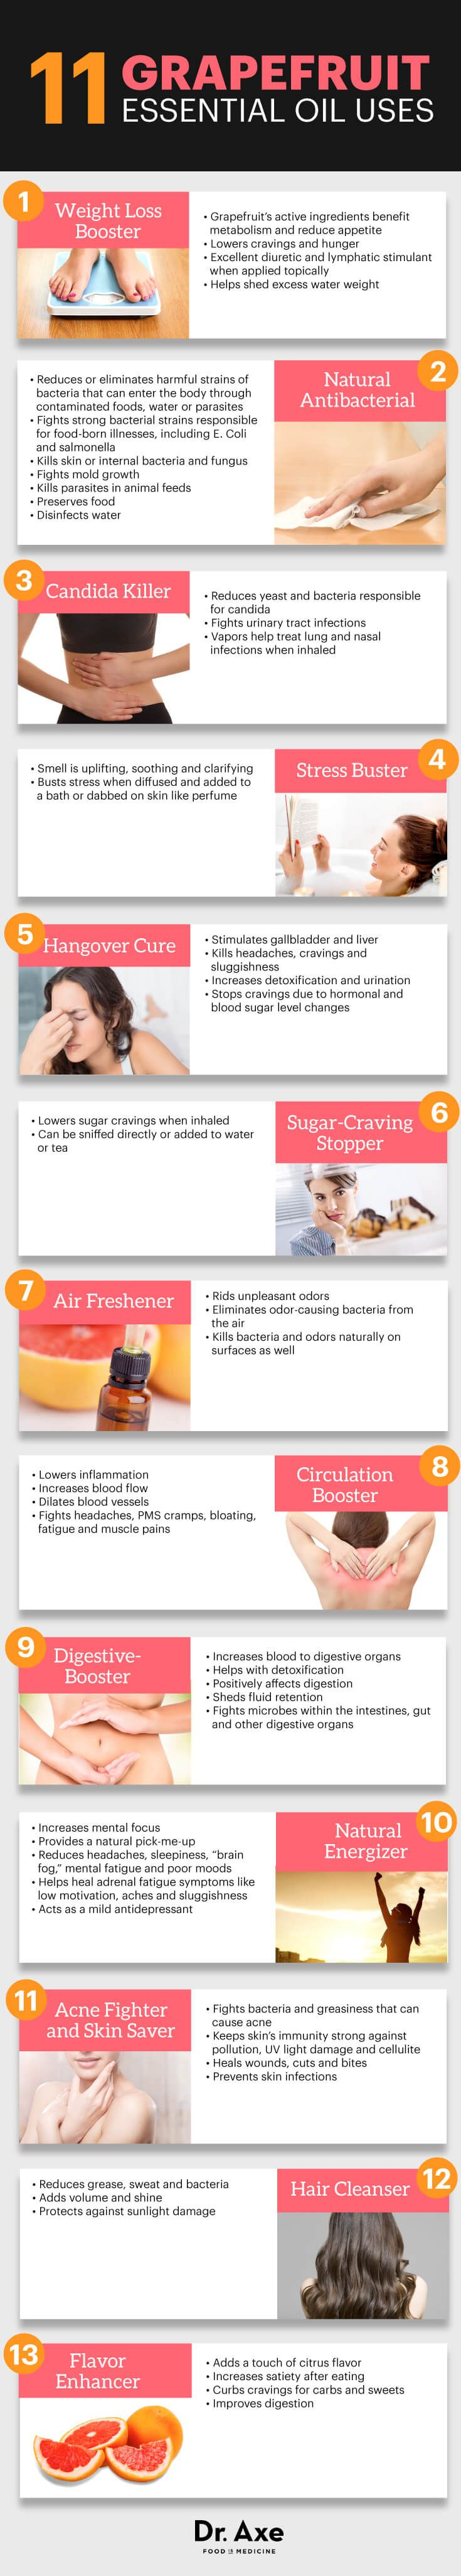 Top 10 Best & Effective Essential Oils for Weight Loss |Grapefruit Essential Oil